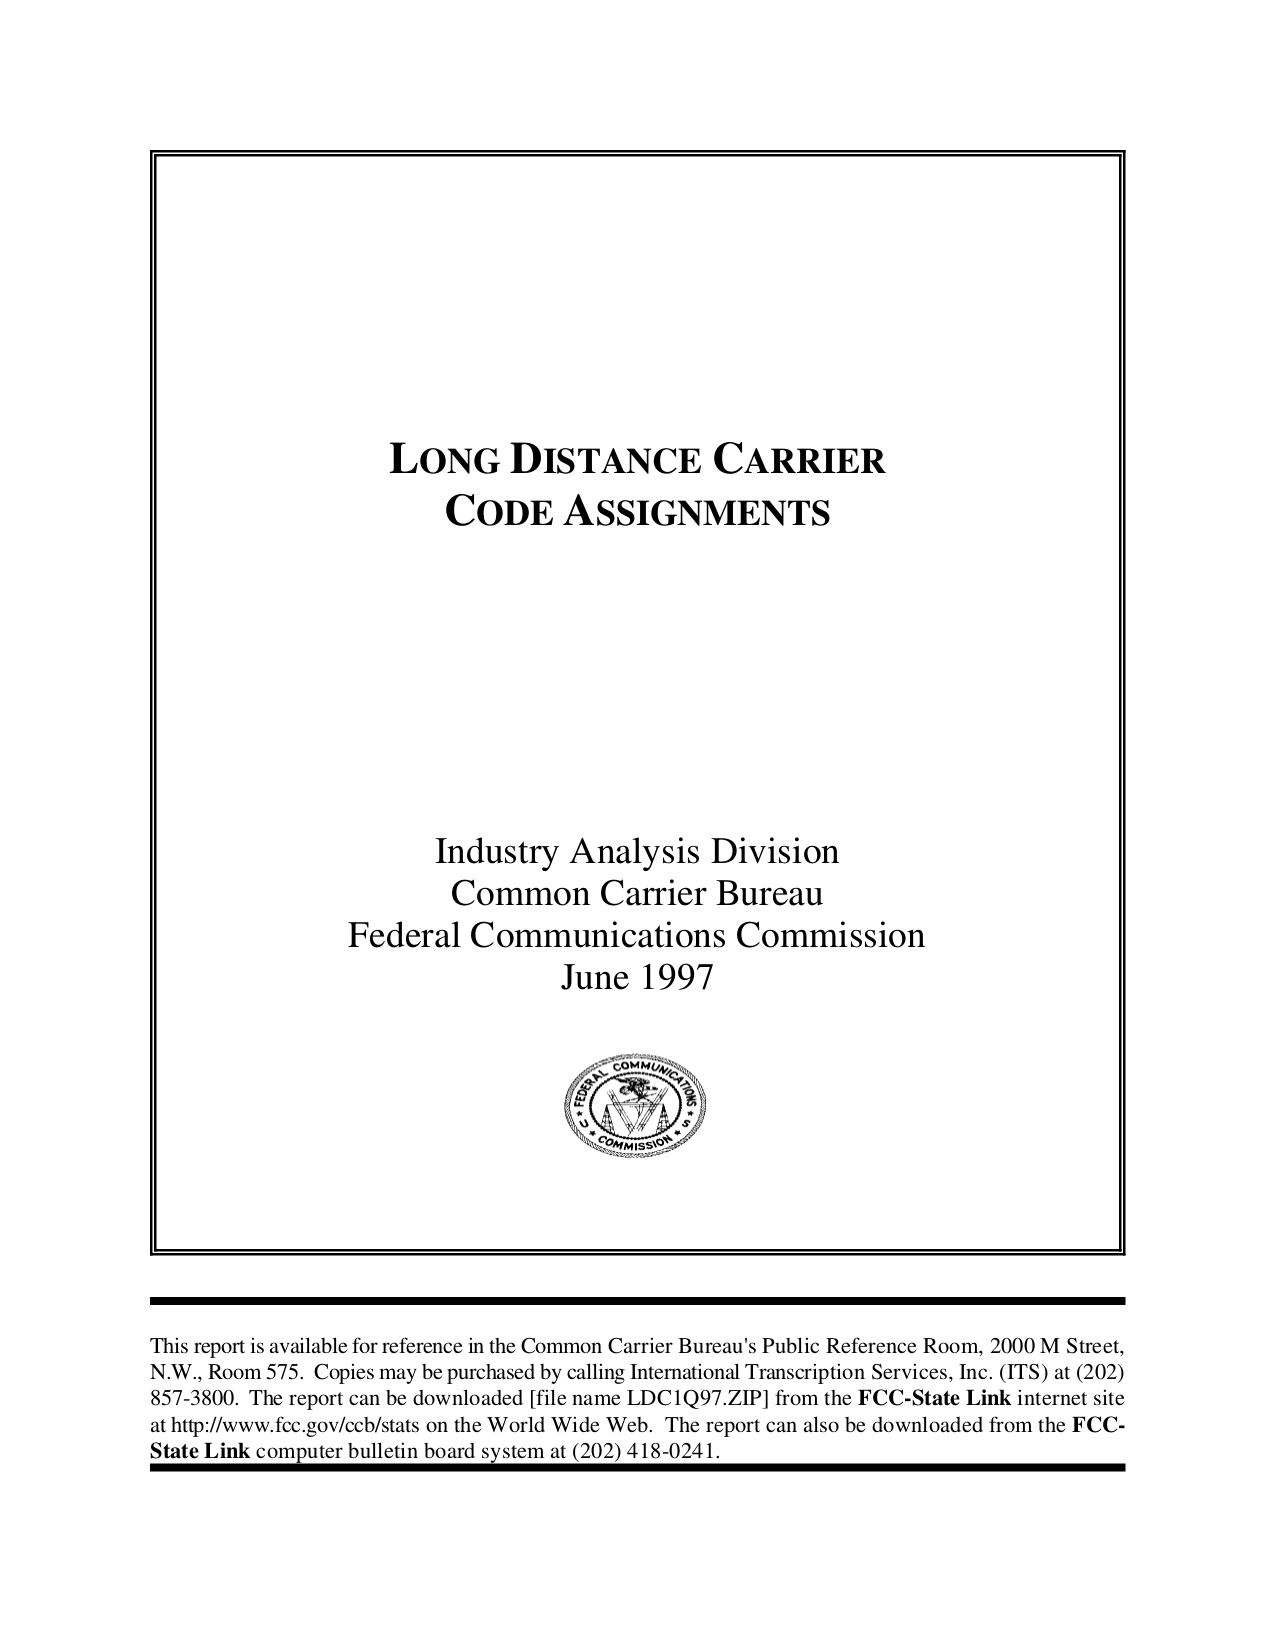 pdf for Nortel Router 5380 manual